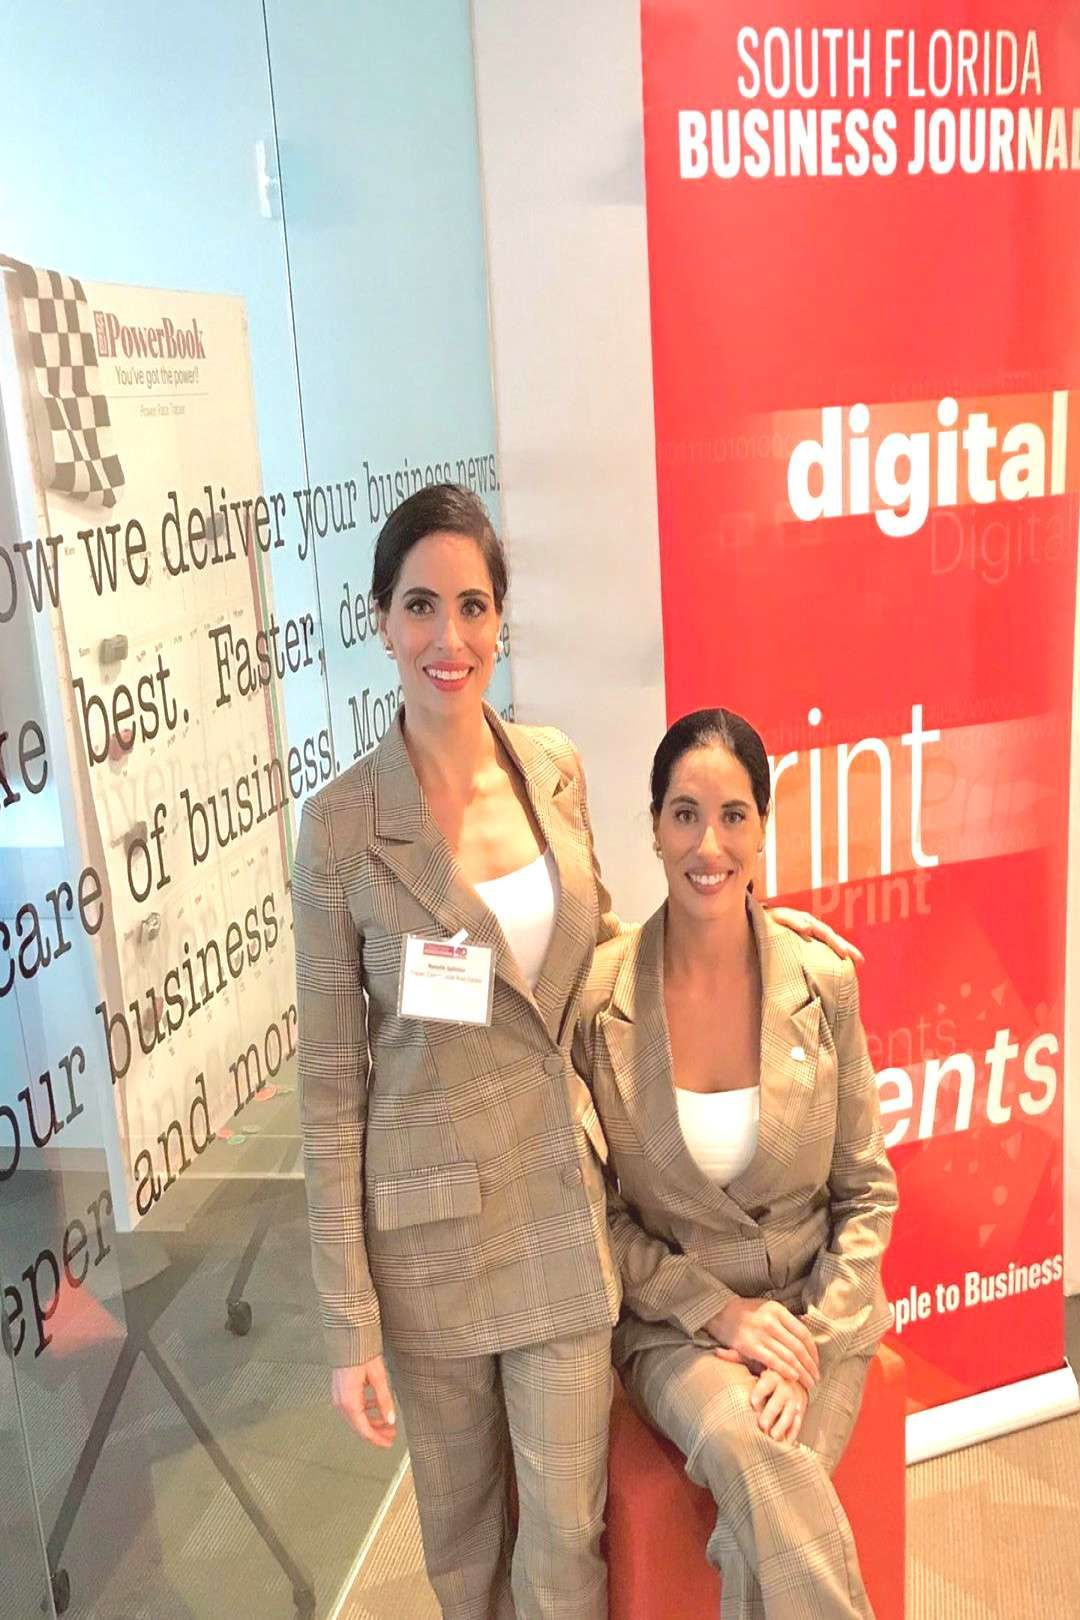 #peoplepeople #networking #business #journals #standing #florida #office #south #the #2 Networking @ the South Florida Business Journal's office. . . . .You can find Real estate articles and more on our website.Networ...